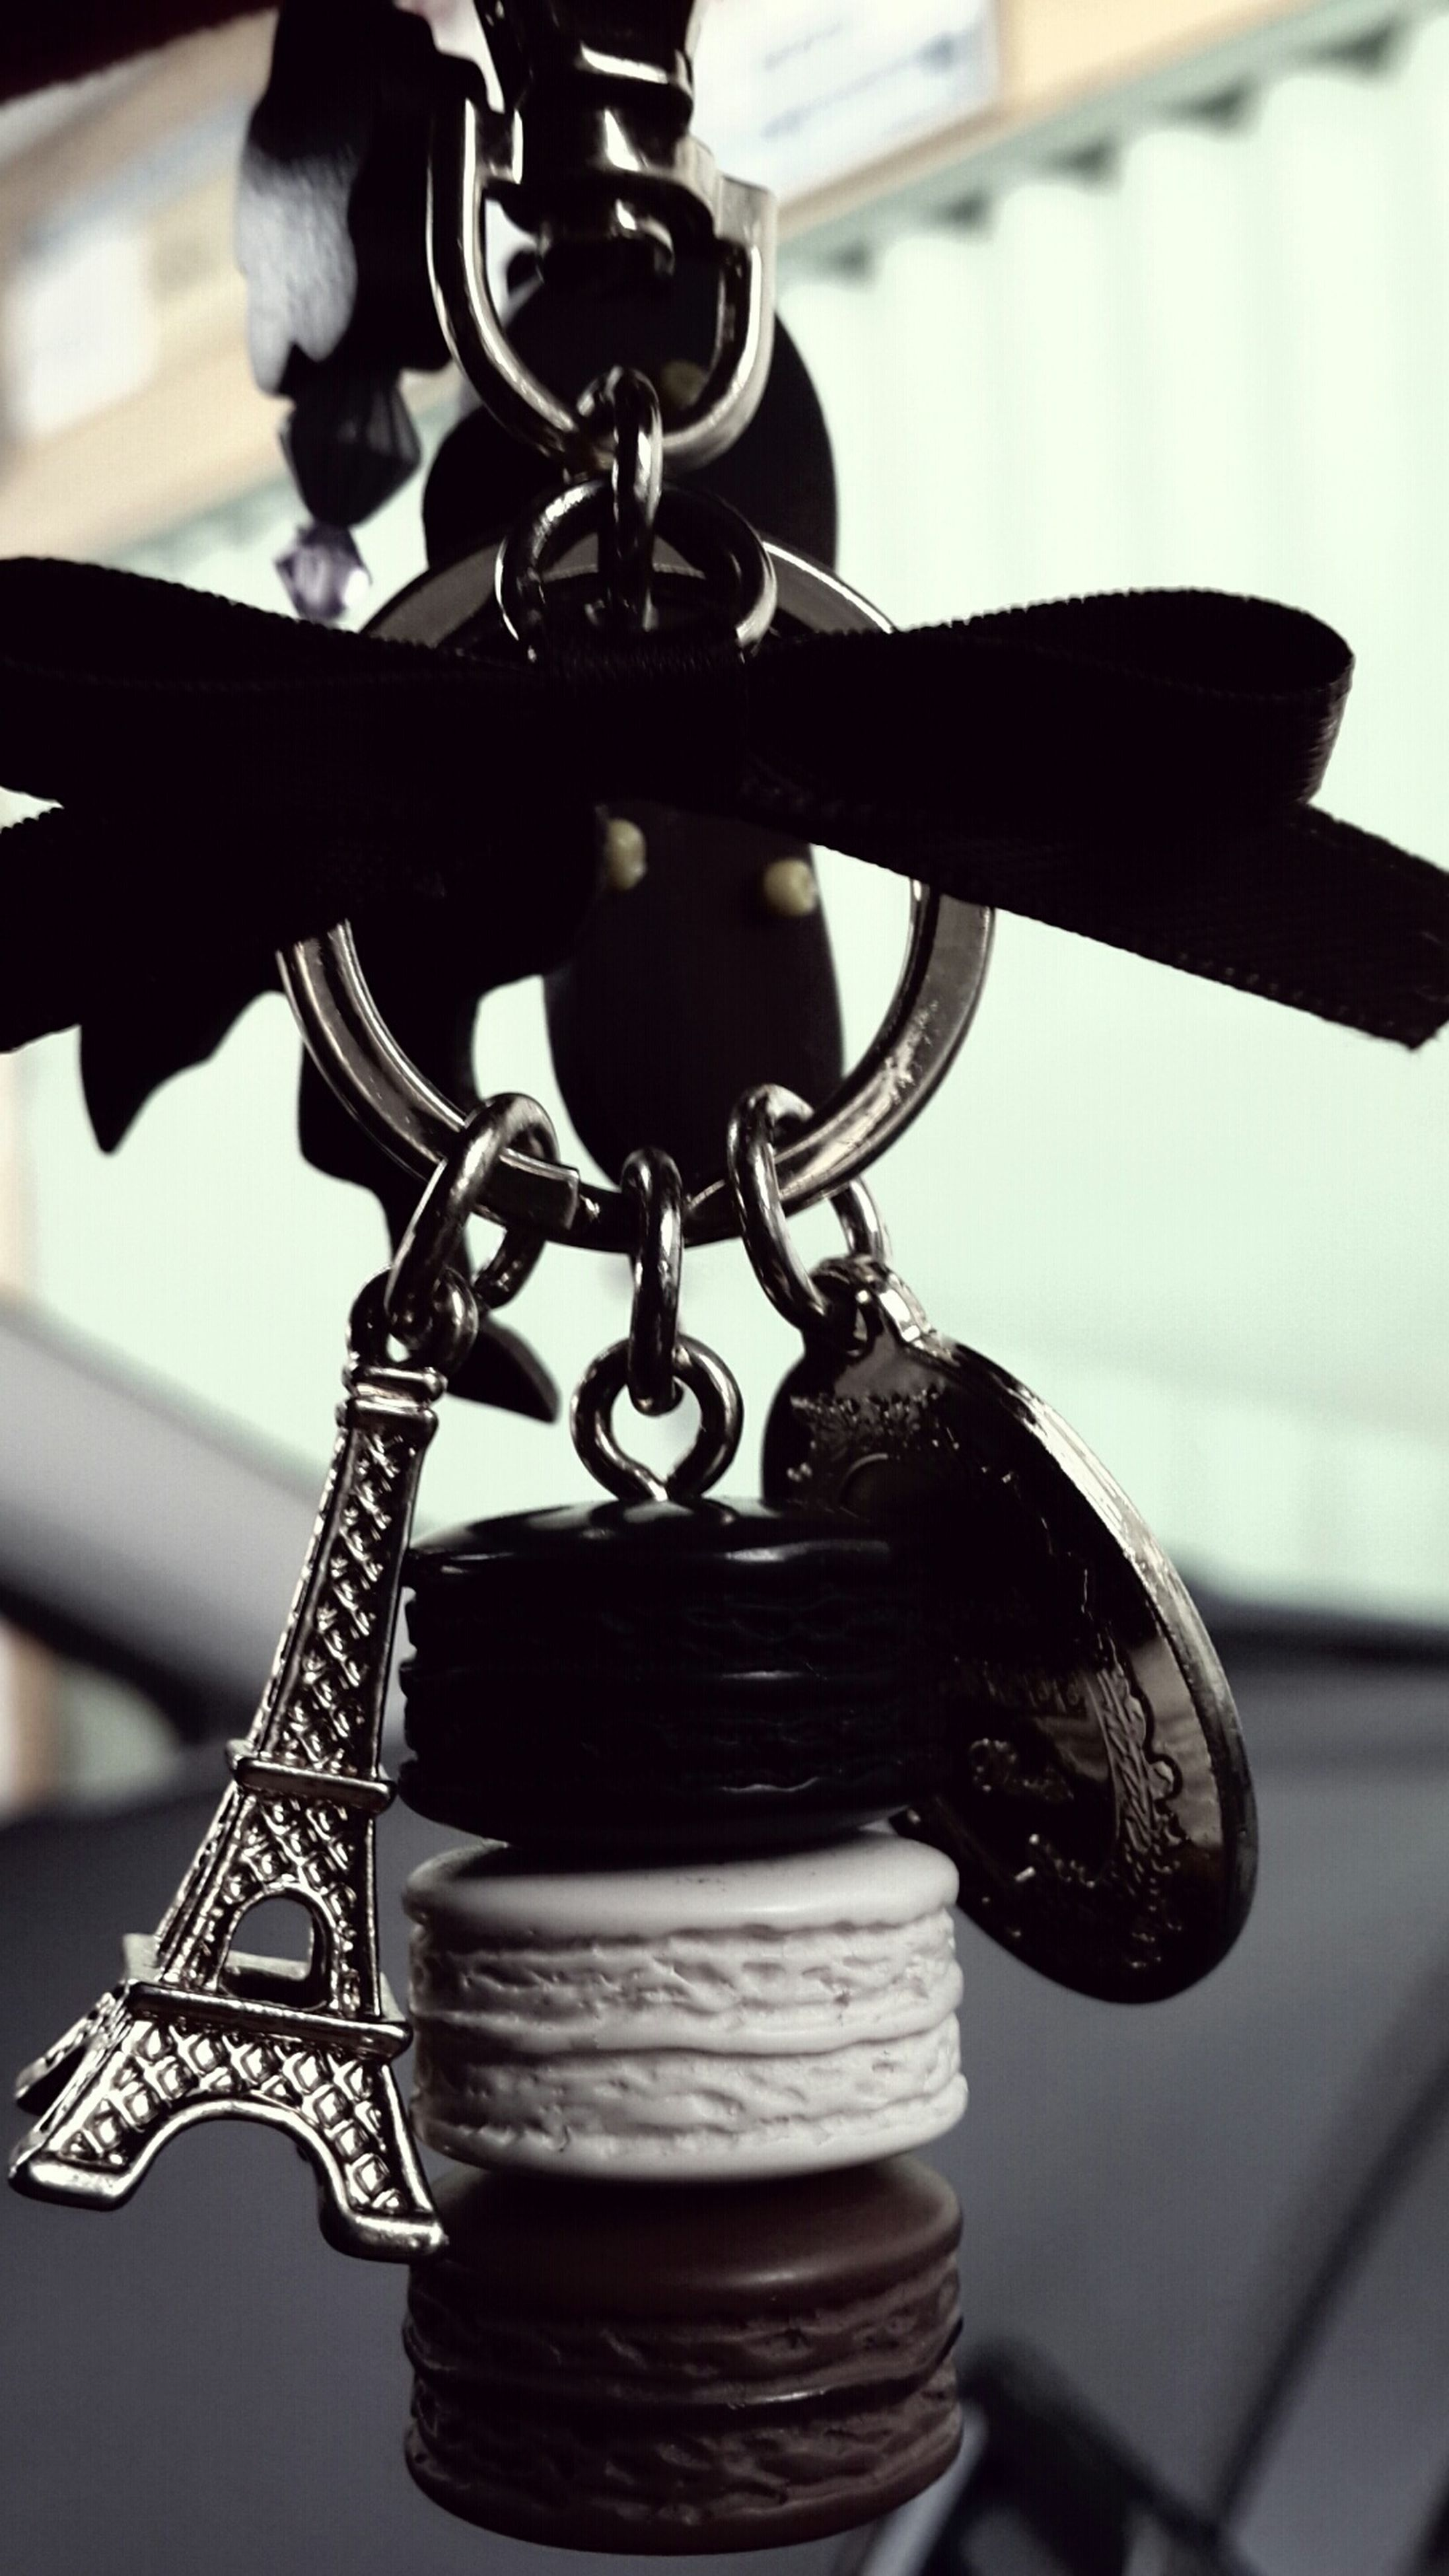 metal, focus on foreground, close-up, metallic, indoors, still life, hanging, part of, selective focus, chain, no people, cropped, reflection, shiny, day, table, single object, water, old-fashioned, detail